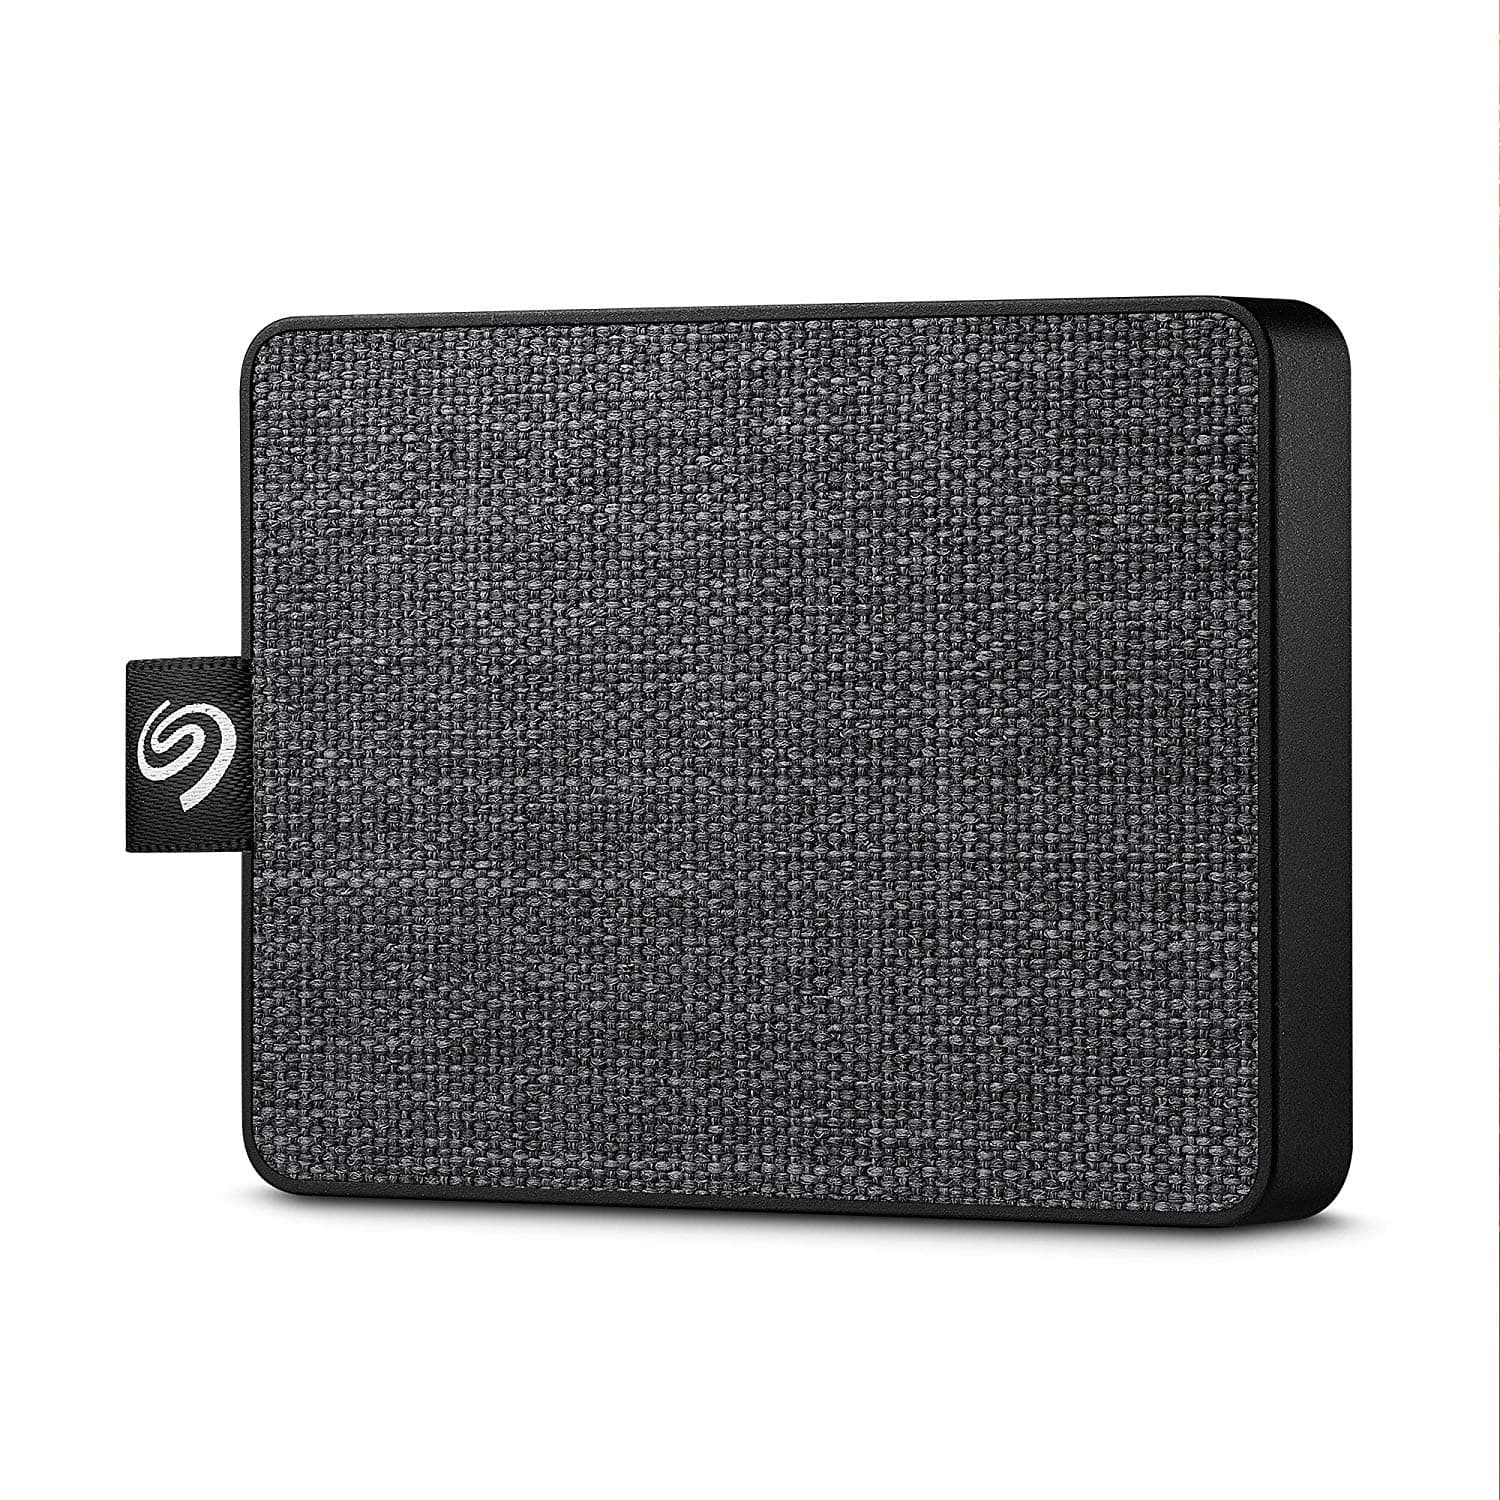 500GB Seagate One Touch SSD USB 3.0 Portable Solid State Drive $54.99 AC & More + Free Shipping @ Staples